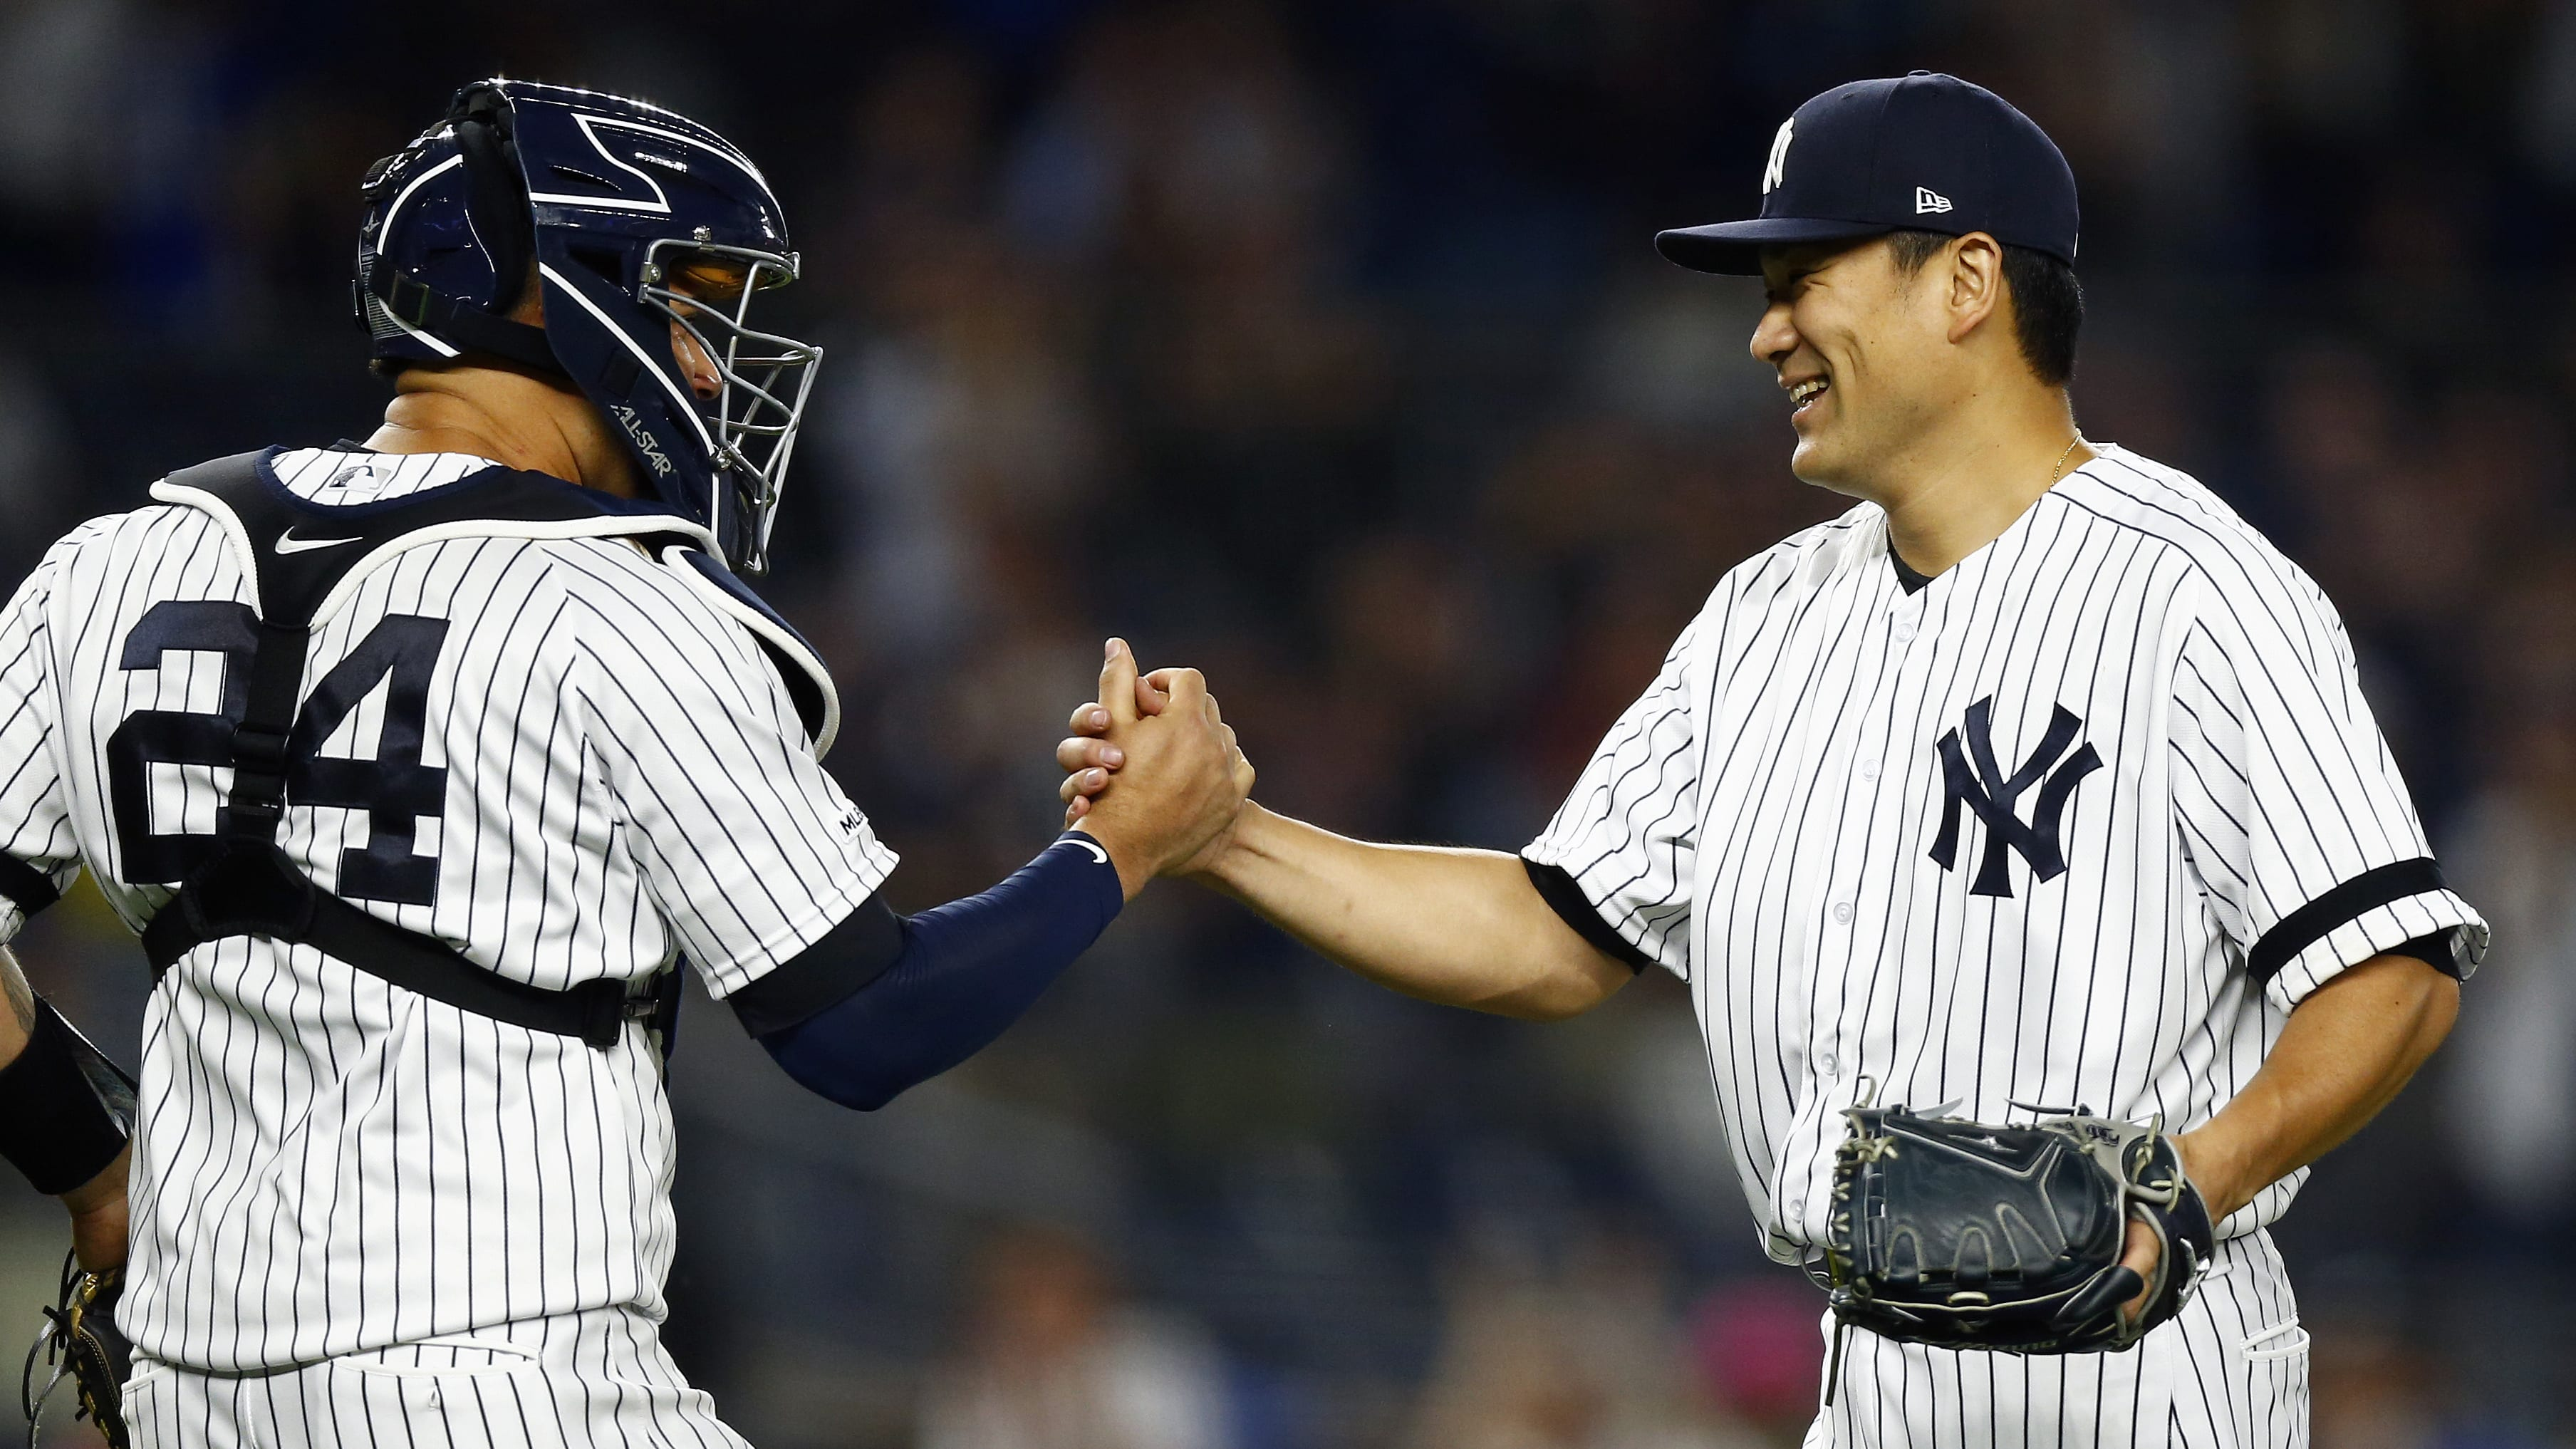 NEW YORK, NY - JUNE 17: Masahiro Tanaka #19 of the New York Yankees celebrates with Gary Sanchez #24 of the New York Yankees after defeating the Tampa Bay Rays at Yankee Stadium on June 17, 2019 in the Bronx borough of New York City. The Yankees won 3-0. (Photo by Adam Hunger/Getty Images)